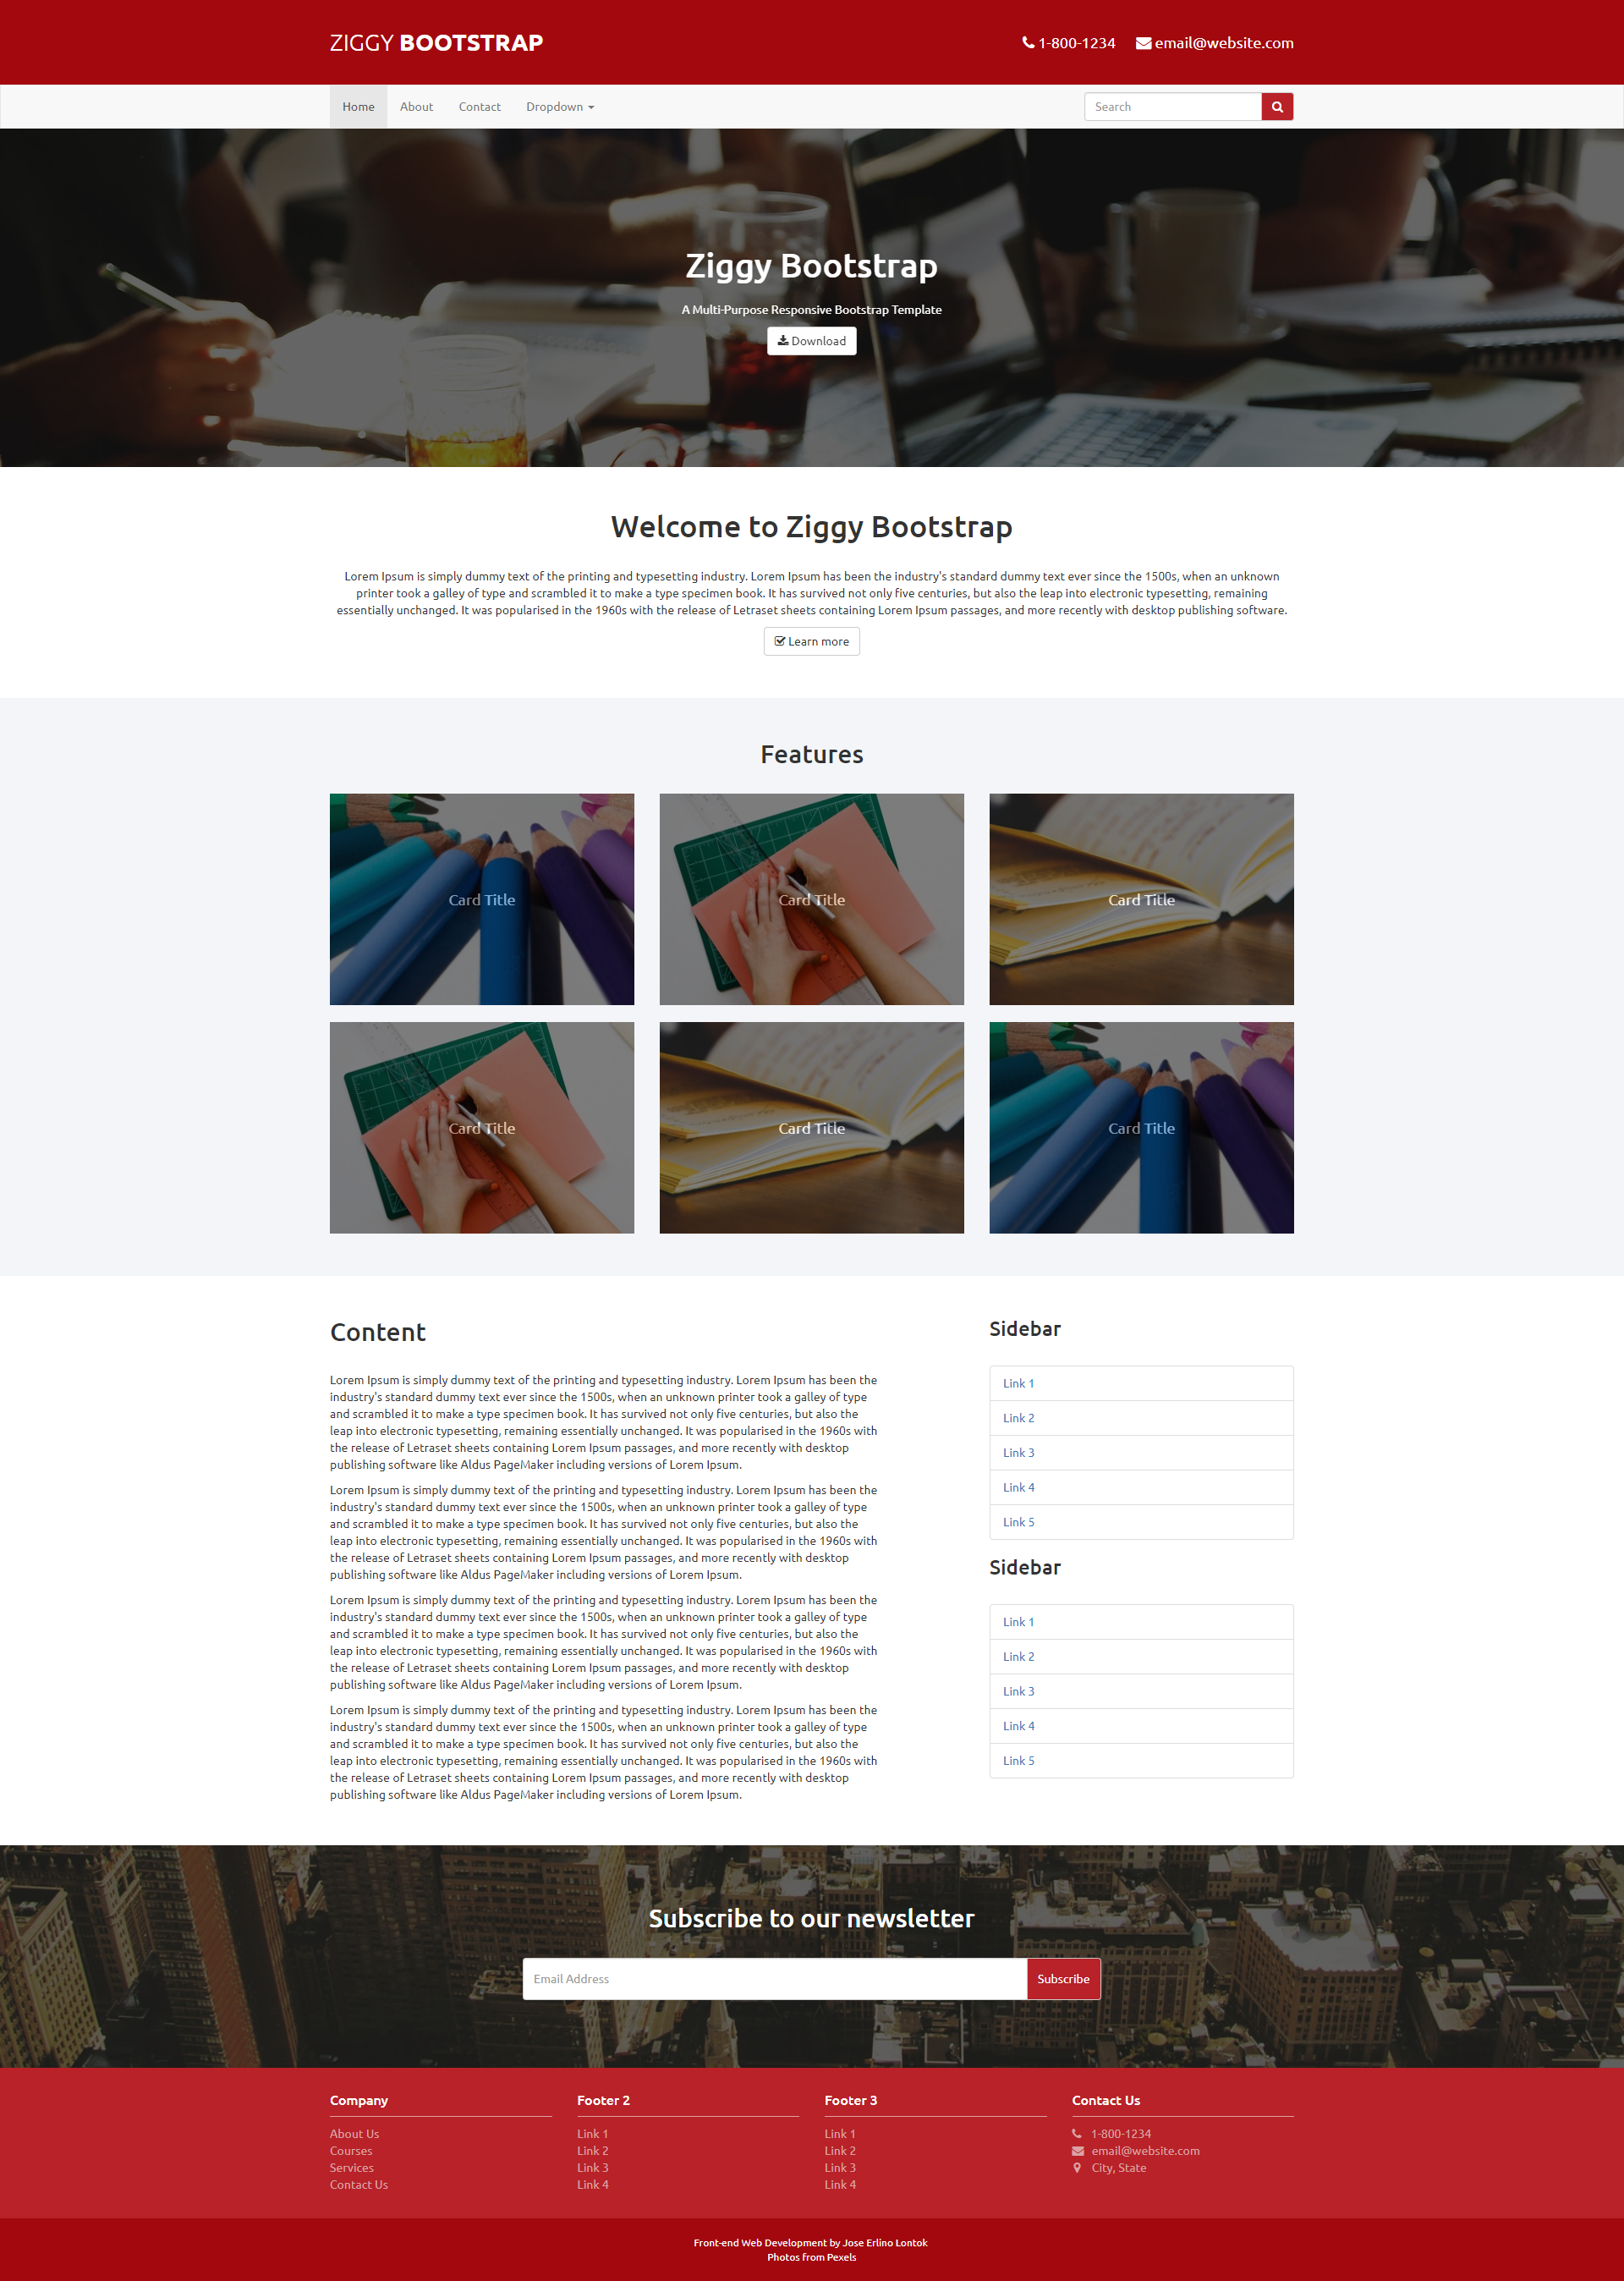 Ziggy Bootstrap - A Multi-Purpose Reponsive Bootstrap Template.